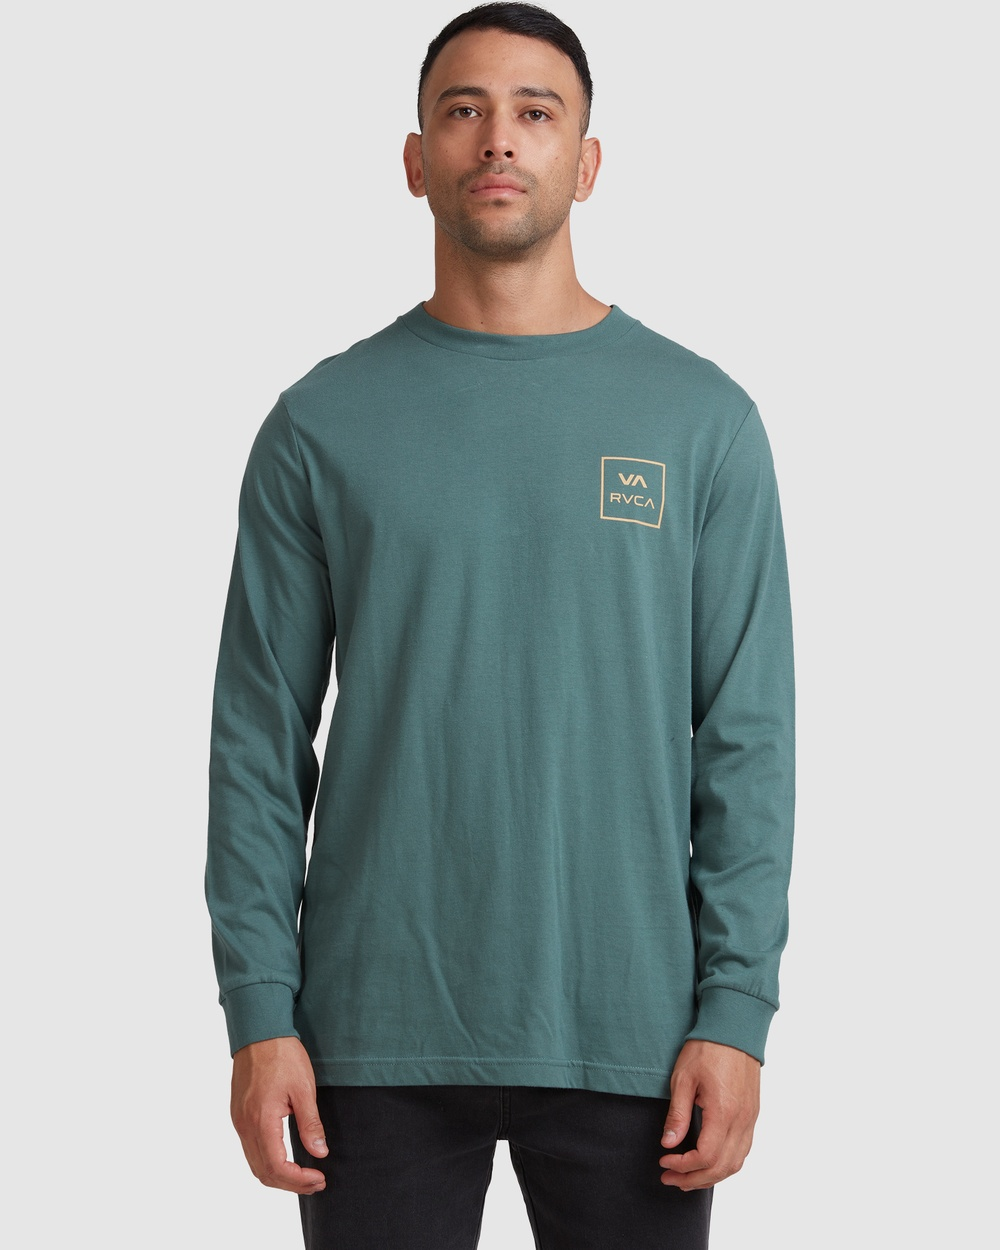 RVCA - Va All The Ways Ls Tee - T-Shirts & Singlets (BALSAM GREEN) Va All The Ways Ls Tee